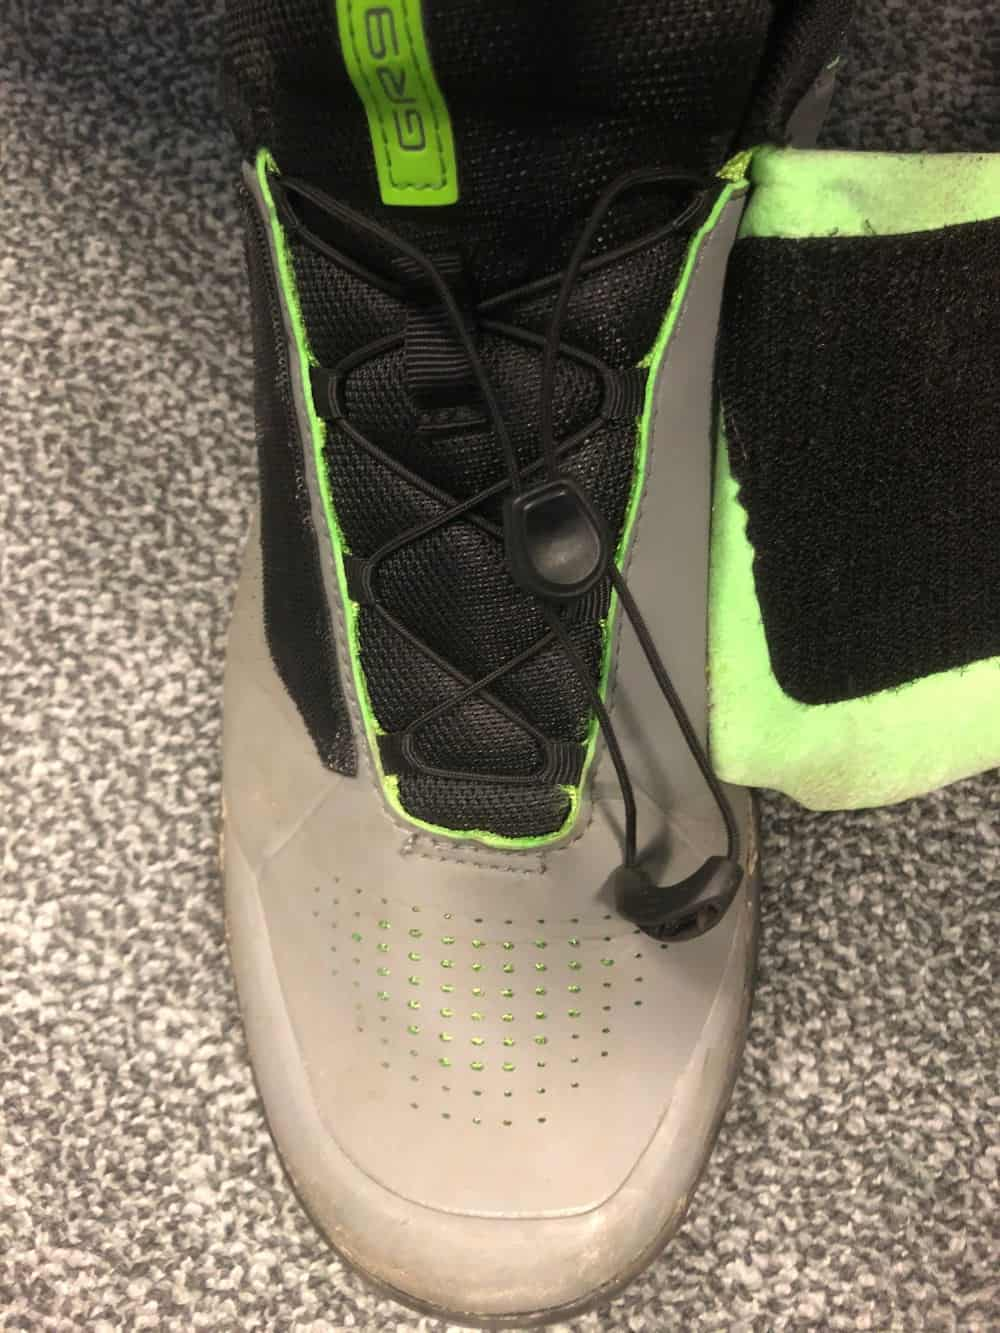 Speed lace and velcro flap for the Shimano GR9 shoes